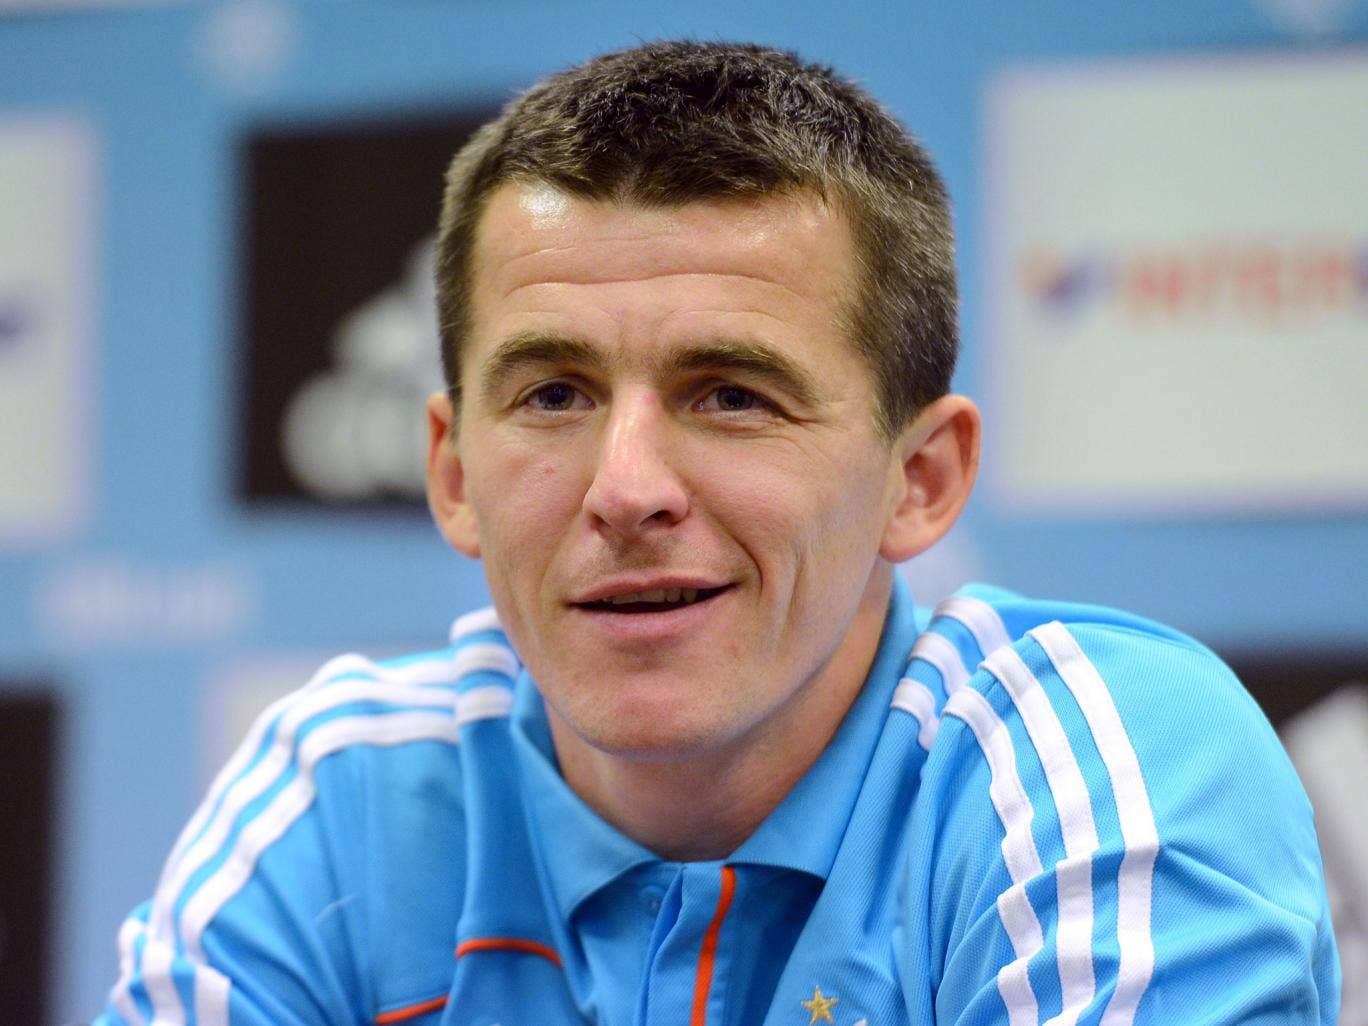 "<b>Joey Barton</b> after doing a press conference with a slightly dubious French accent:<br/> ""In my defence, it is very difficult to do a press conference in Scouse for a room full of French journalists. The alternative is to speak like a 'Allo Allo!' ch"